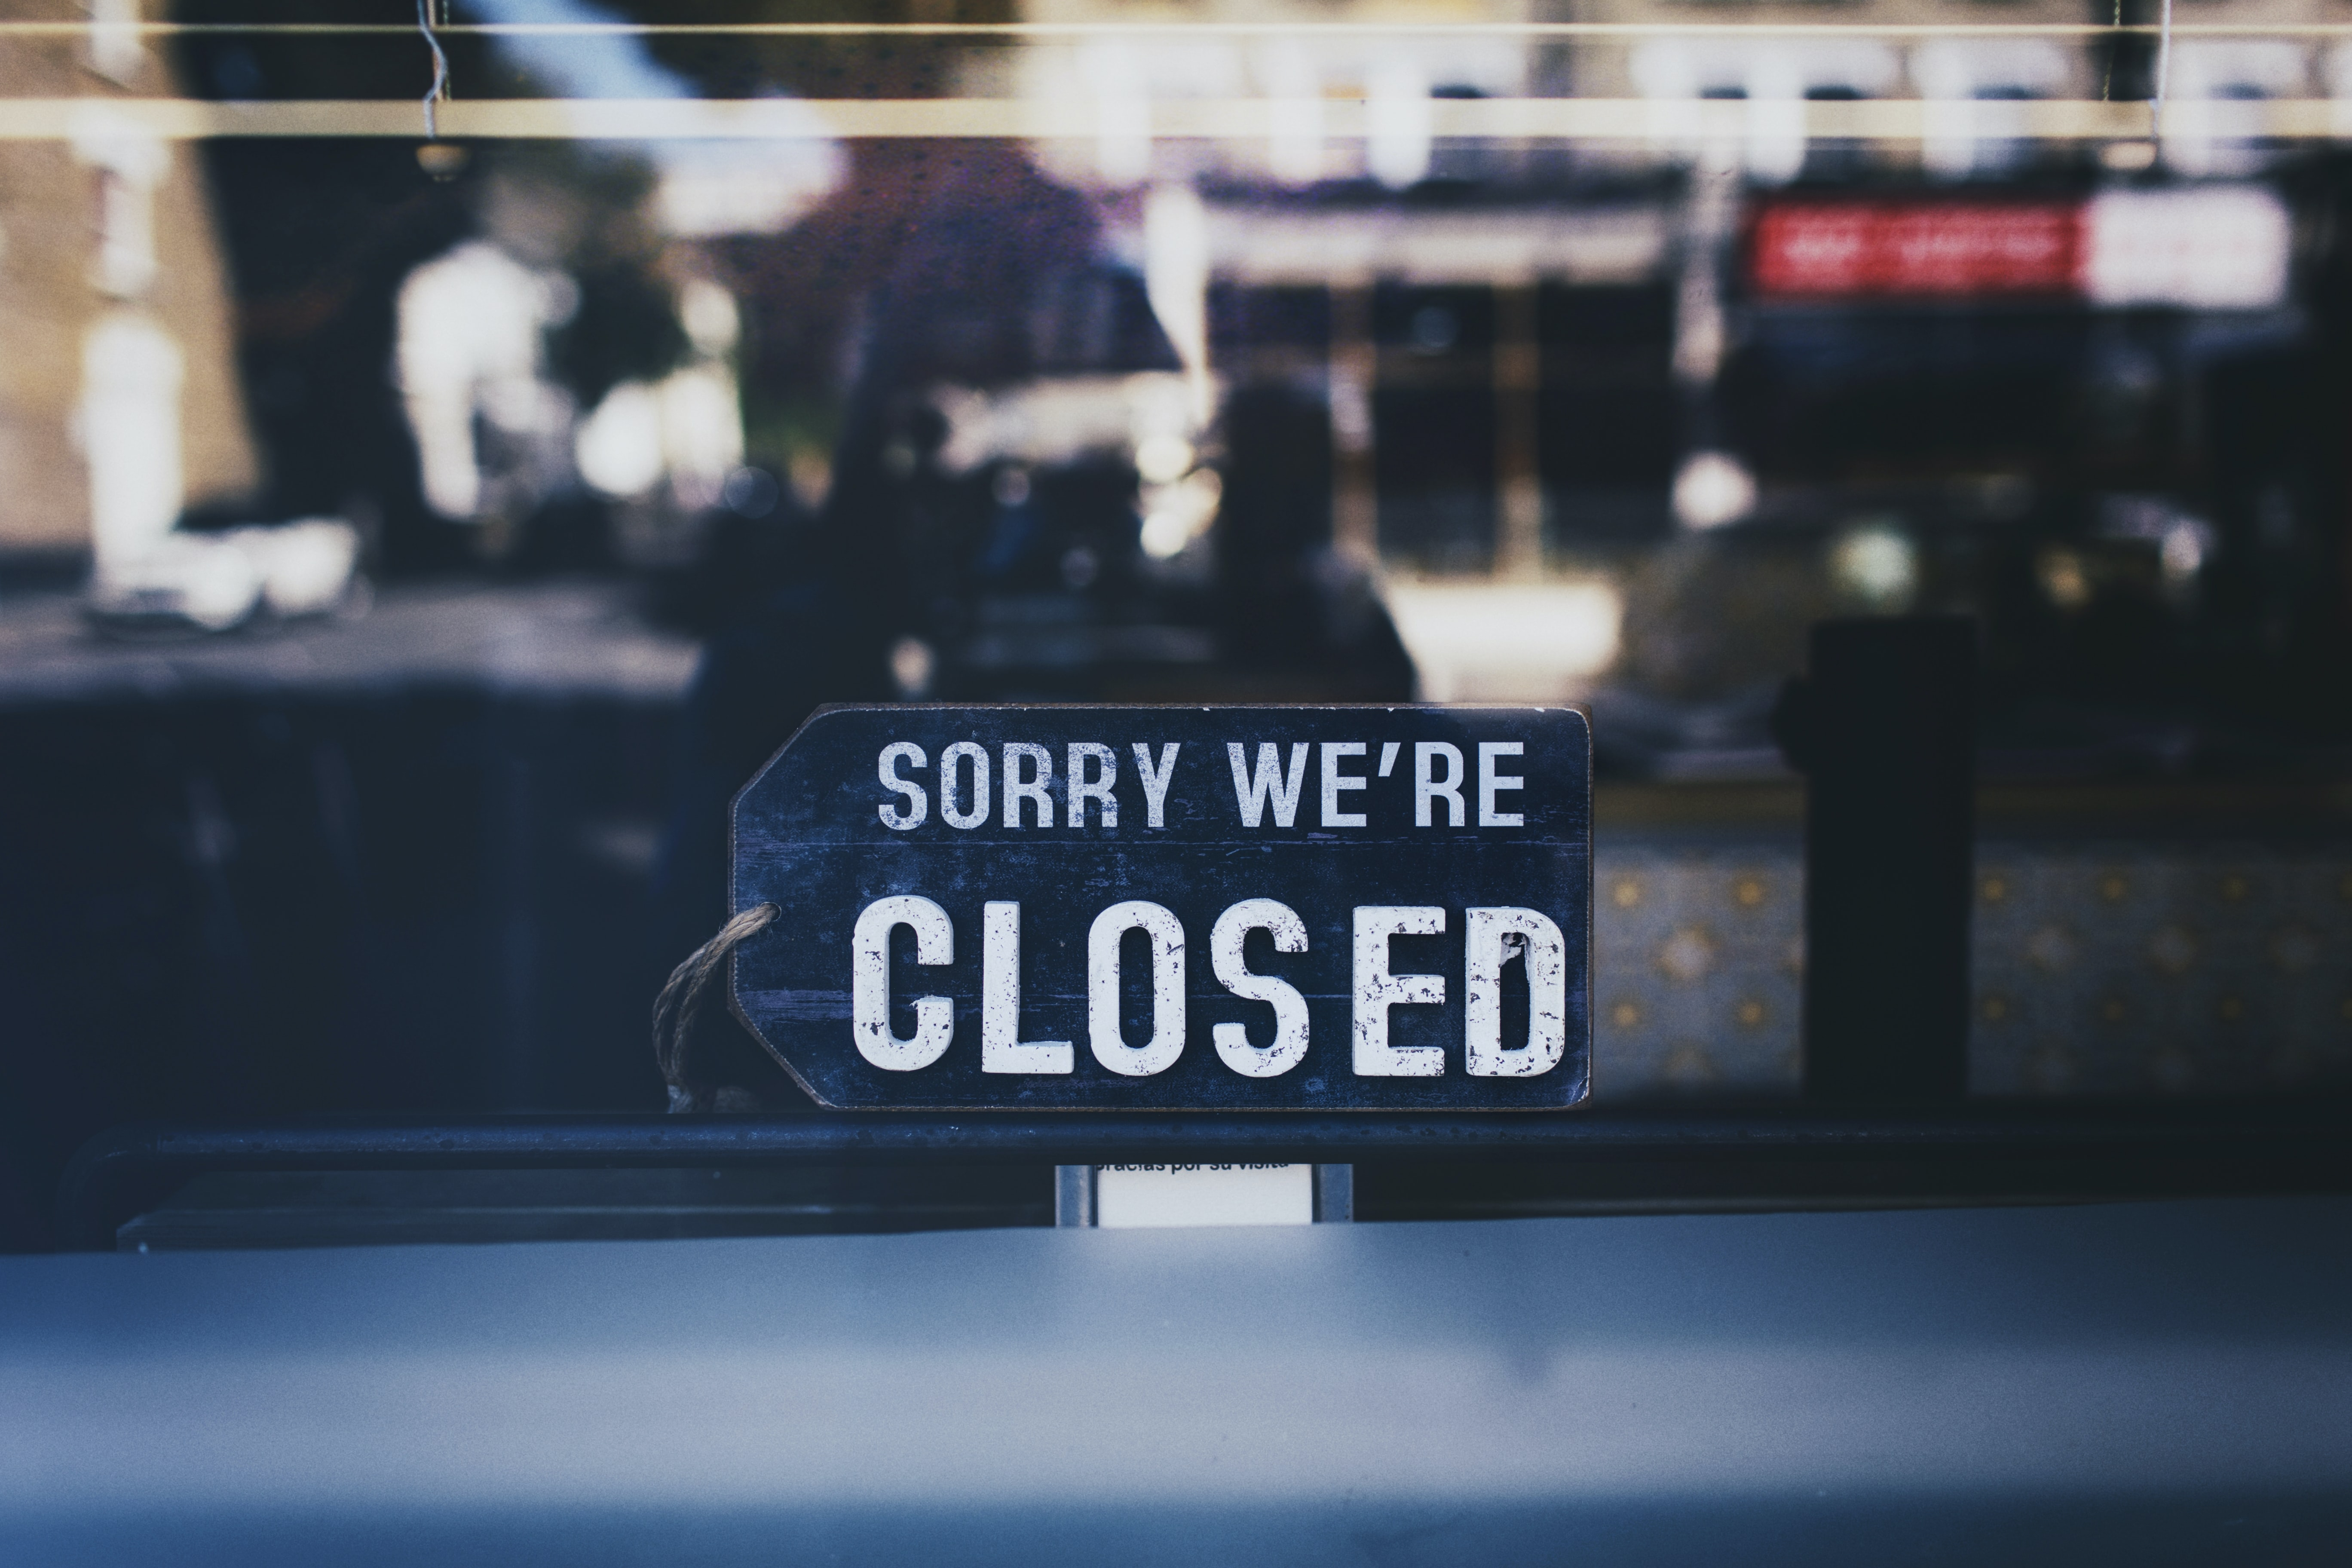 Sorry we're closed sign during daytime